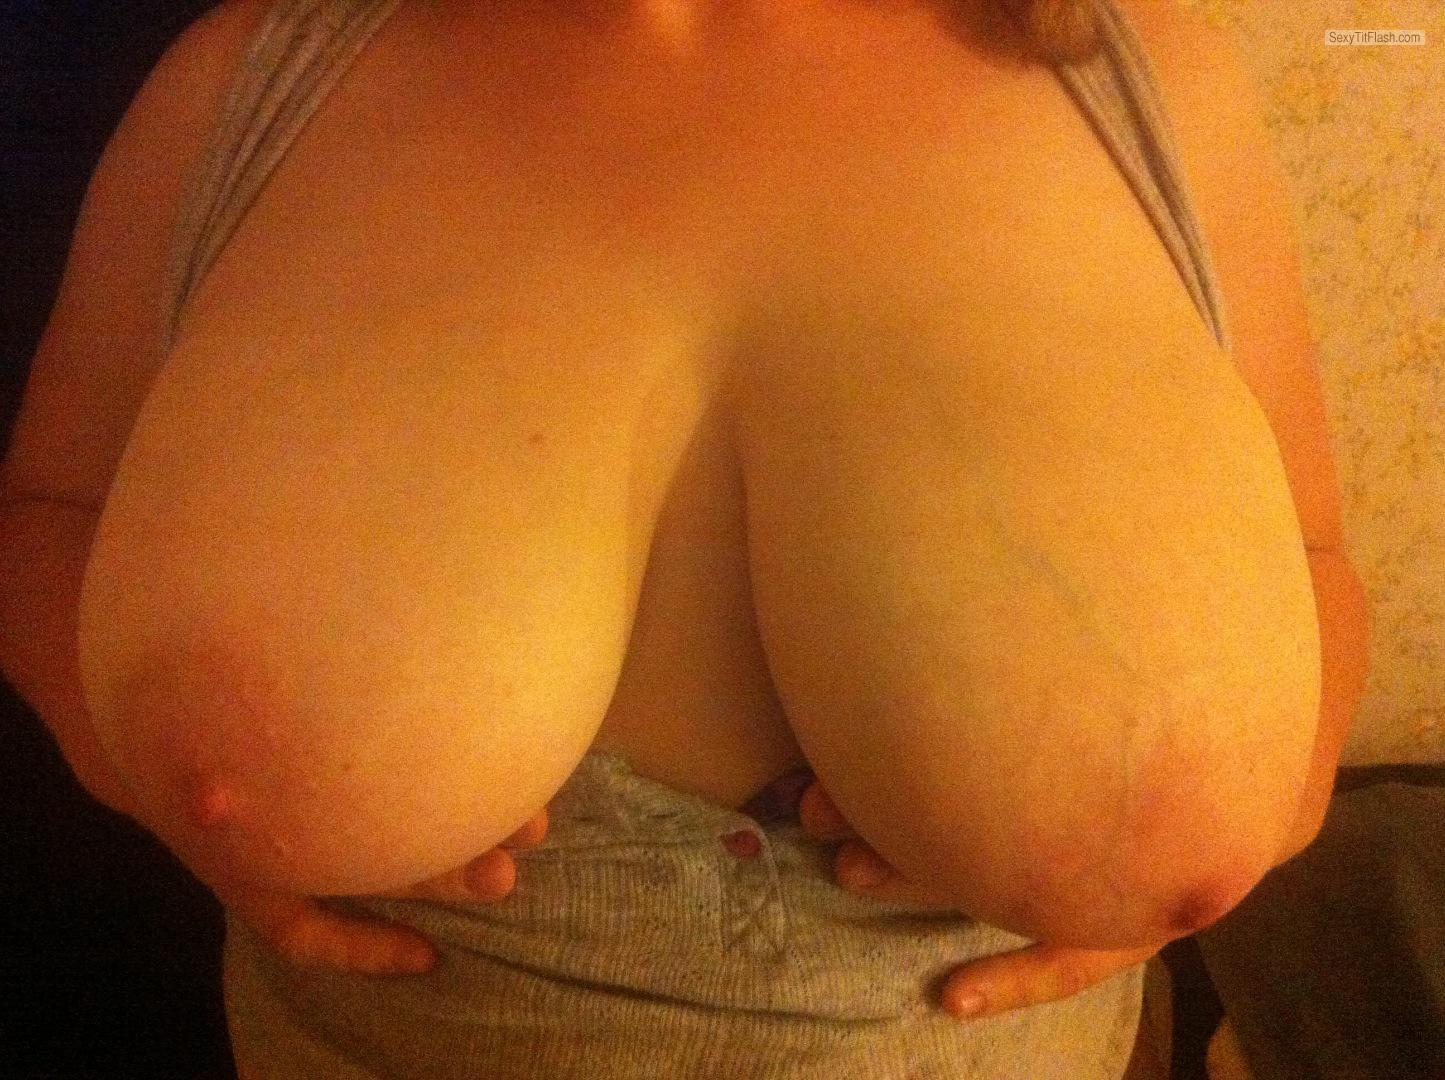 My Very big Tits Selfie by Bustytx